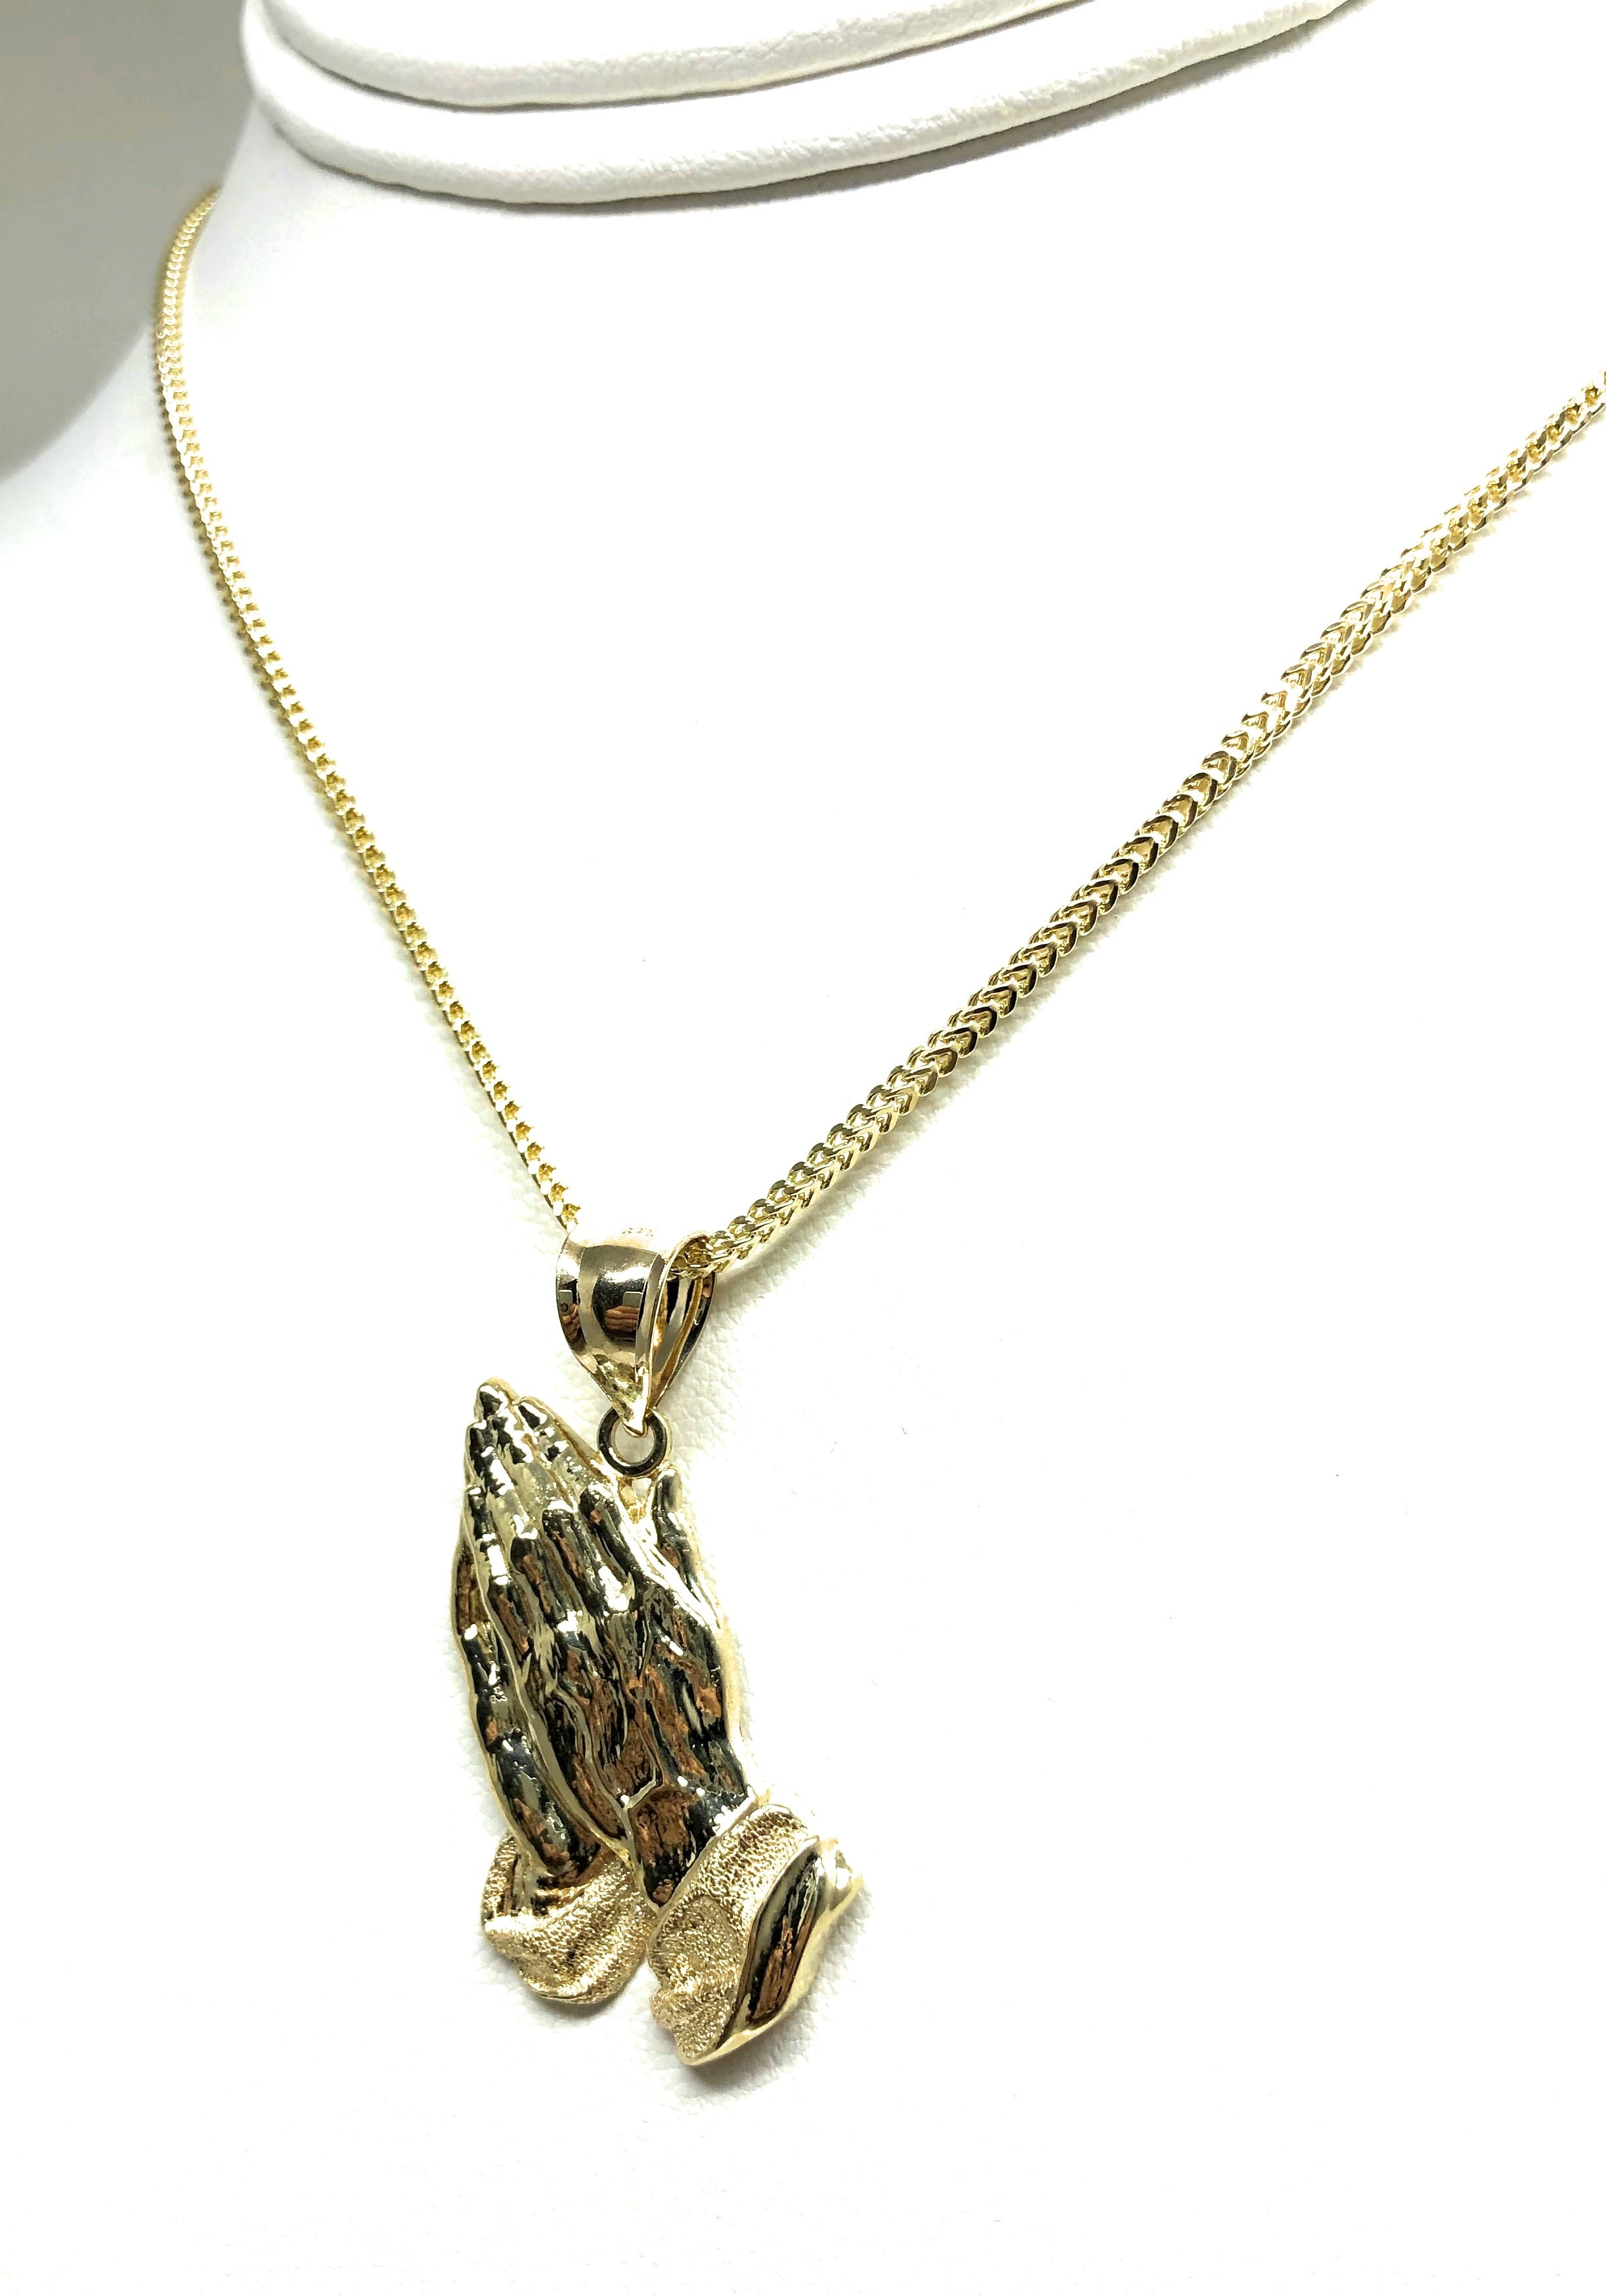 10k Solid Gold Yellow Prayer Hands Pendant Necklace with Chain Options